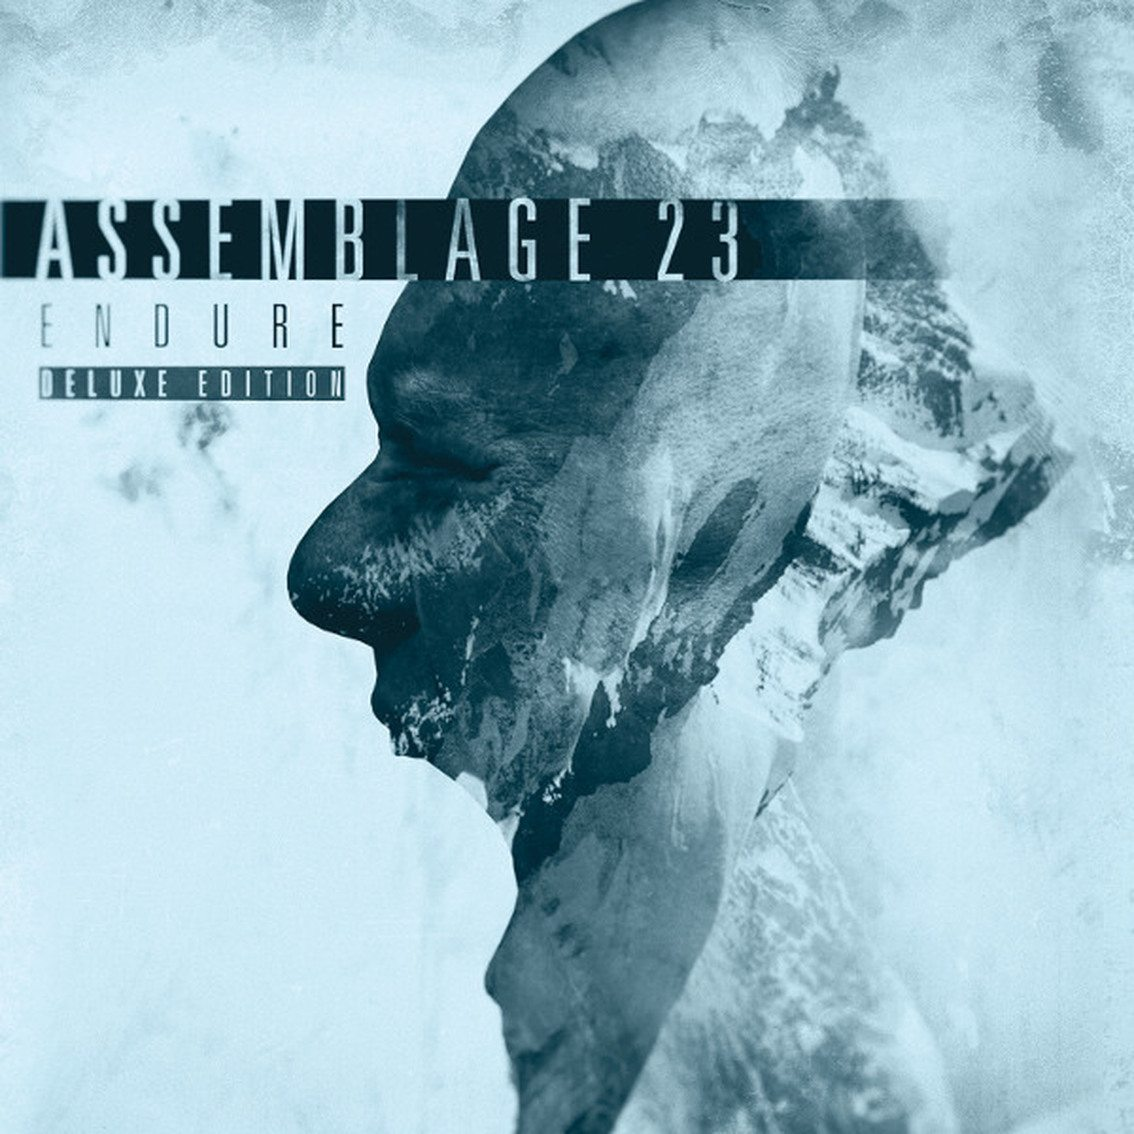 Assemblage 23 to prepare new'Endure' album as a deluxe 2CD set, vinyl and normal CD